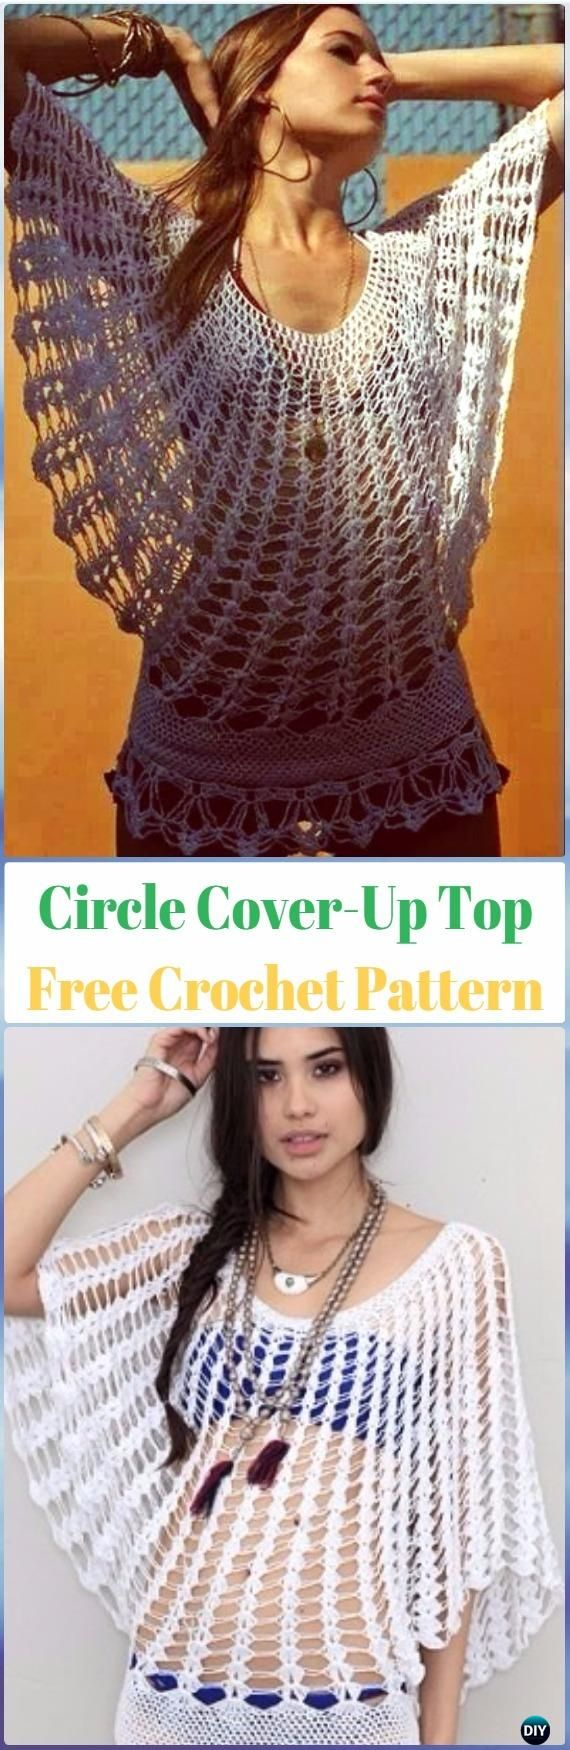 Crochet Circle Beach Cover-Up Top Free Pattern - Crochet Beach Cover Up Free Patterns